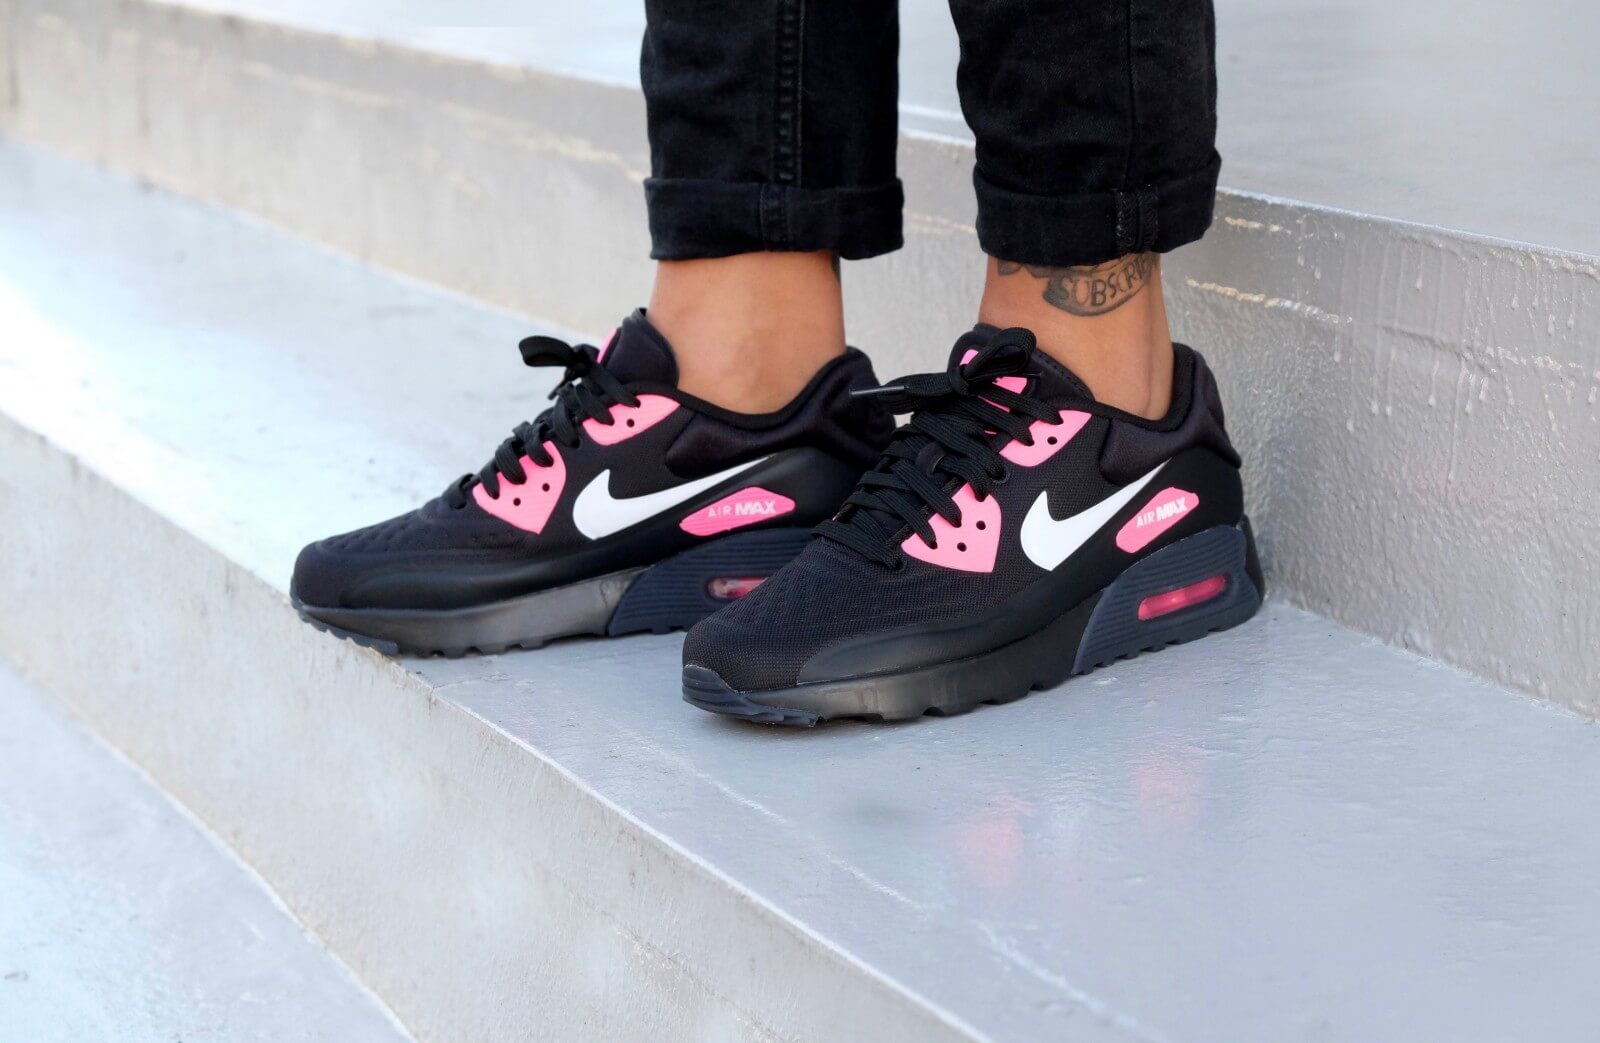 Nike WMNS Air Max 90 Ultra Special Edition GS Black/ White-Hyper Pink